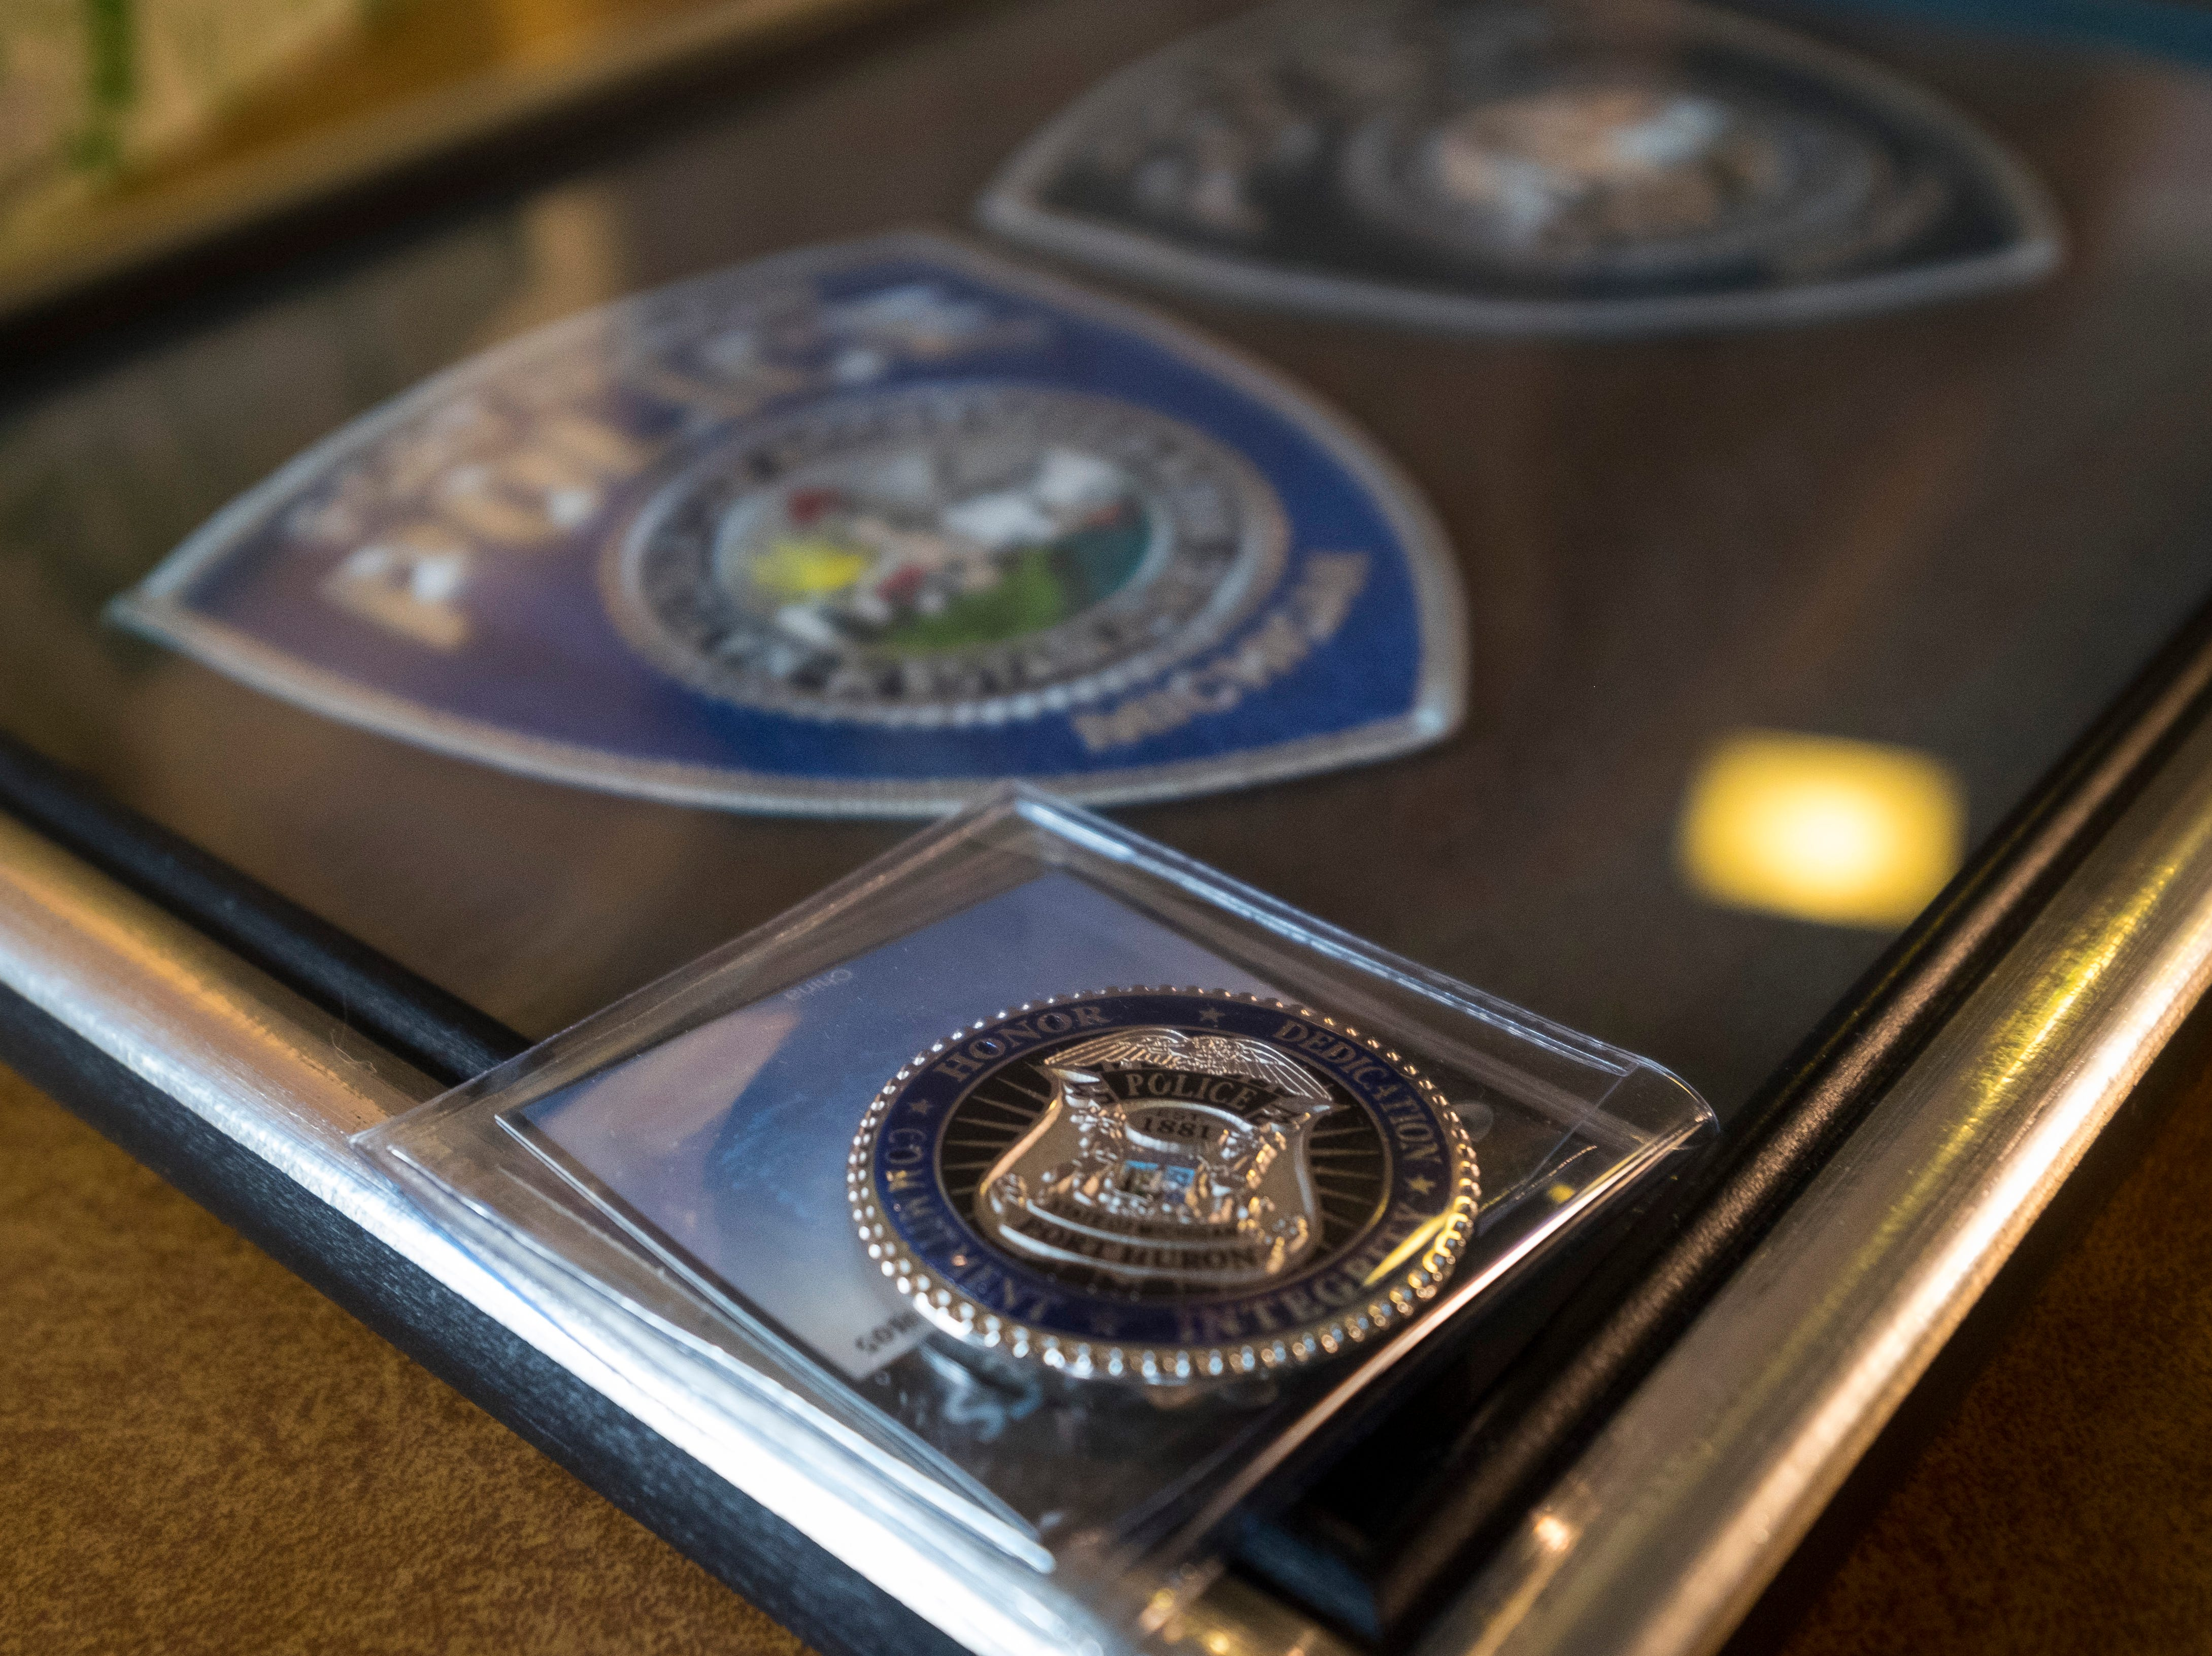 A Port Huron Police challenge coin and two framed patches sit on a table after being presented to William Turney, a 92-year-old World War II veteran who wanted to become a police officer after the war.